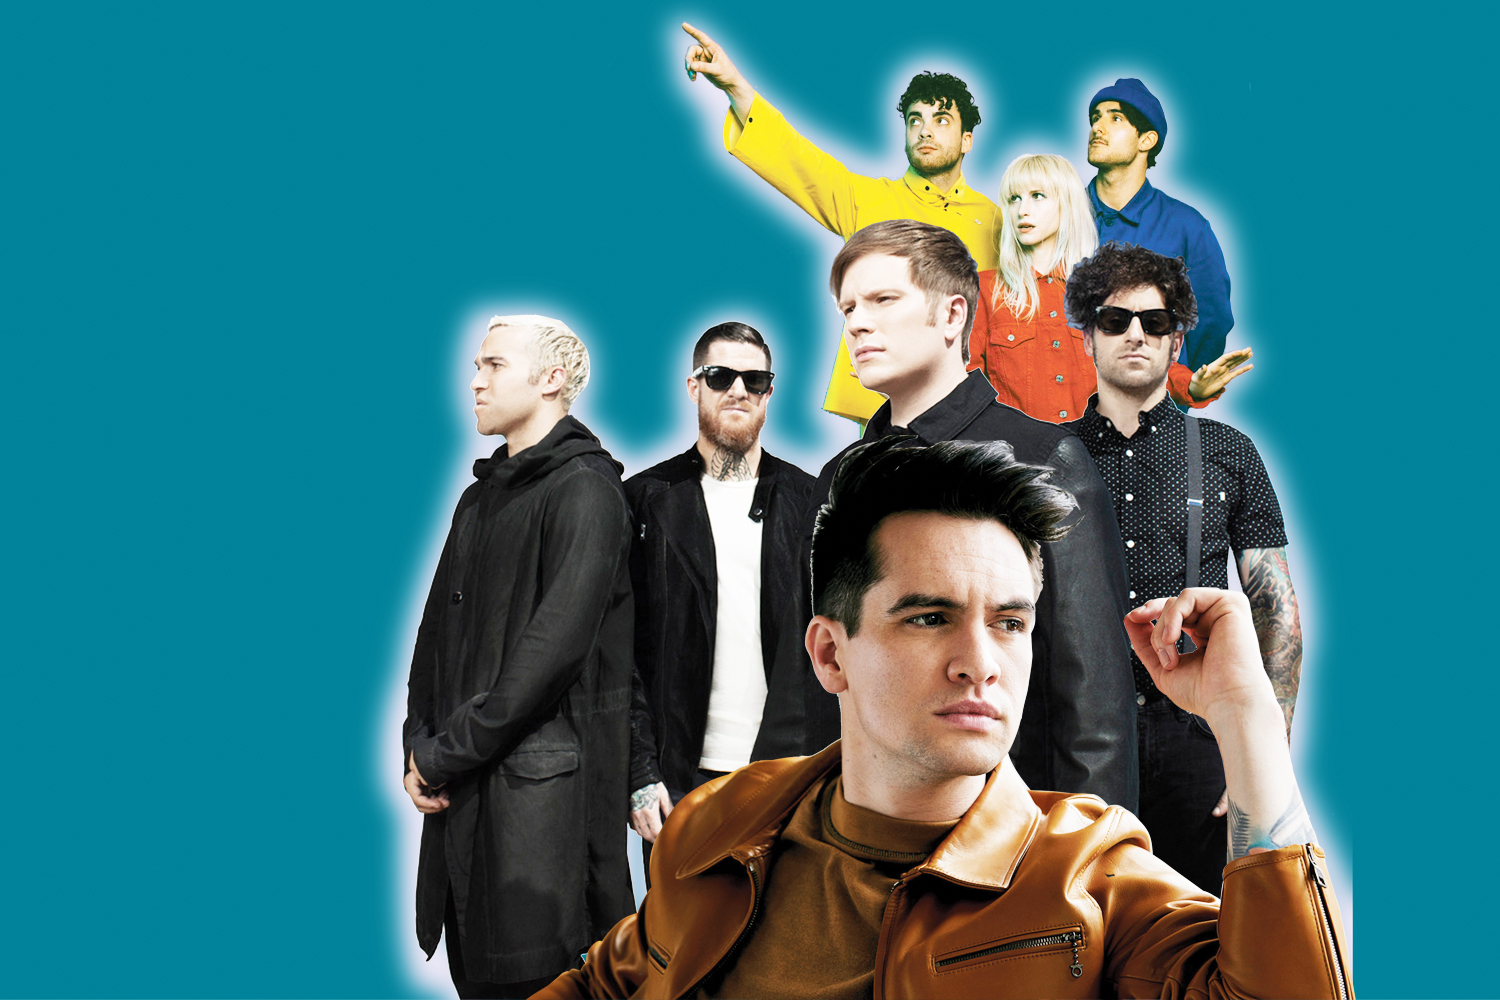 As fans grow up, pop-punk bands' music grew with us. These bands have switched their genre of music to stay relevant and to keep up with the audience that has followed them since the beginning. Bands like Linkin Park, Maroon 5, Weezer, Green Day, and Blink 182 are some examples of changing to match their audience.